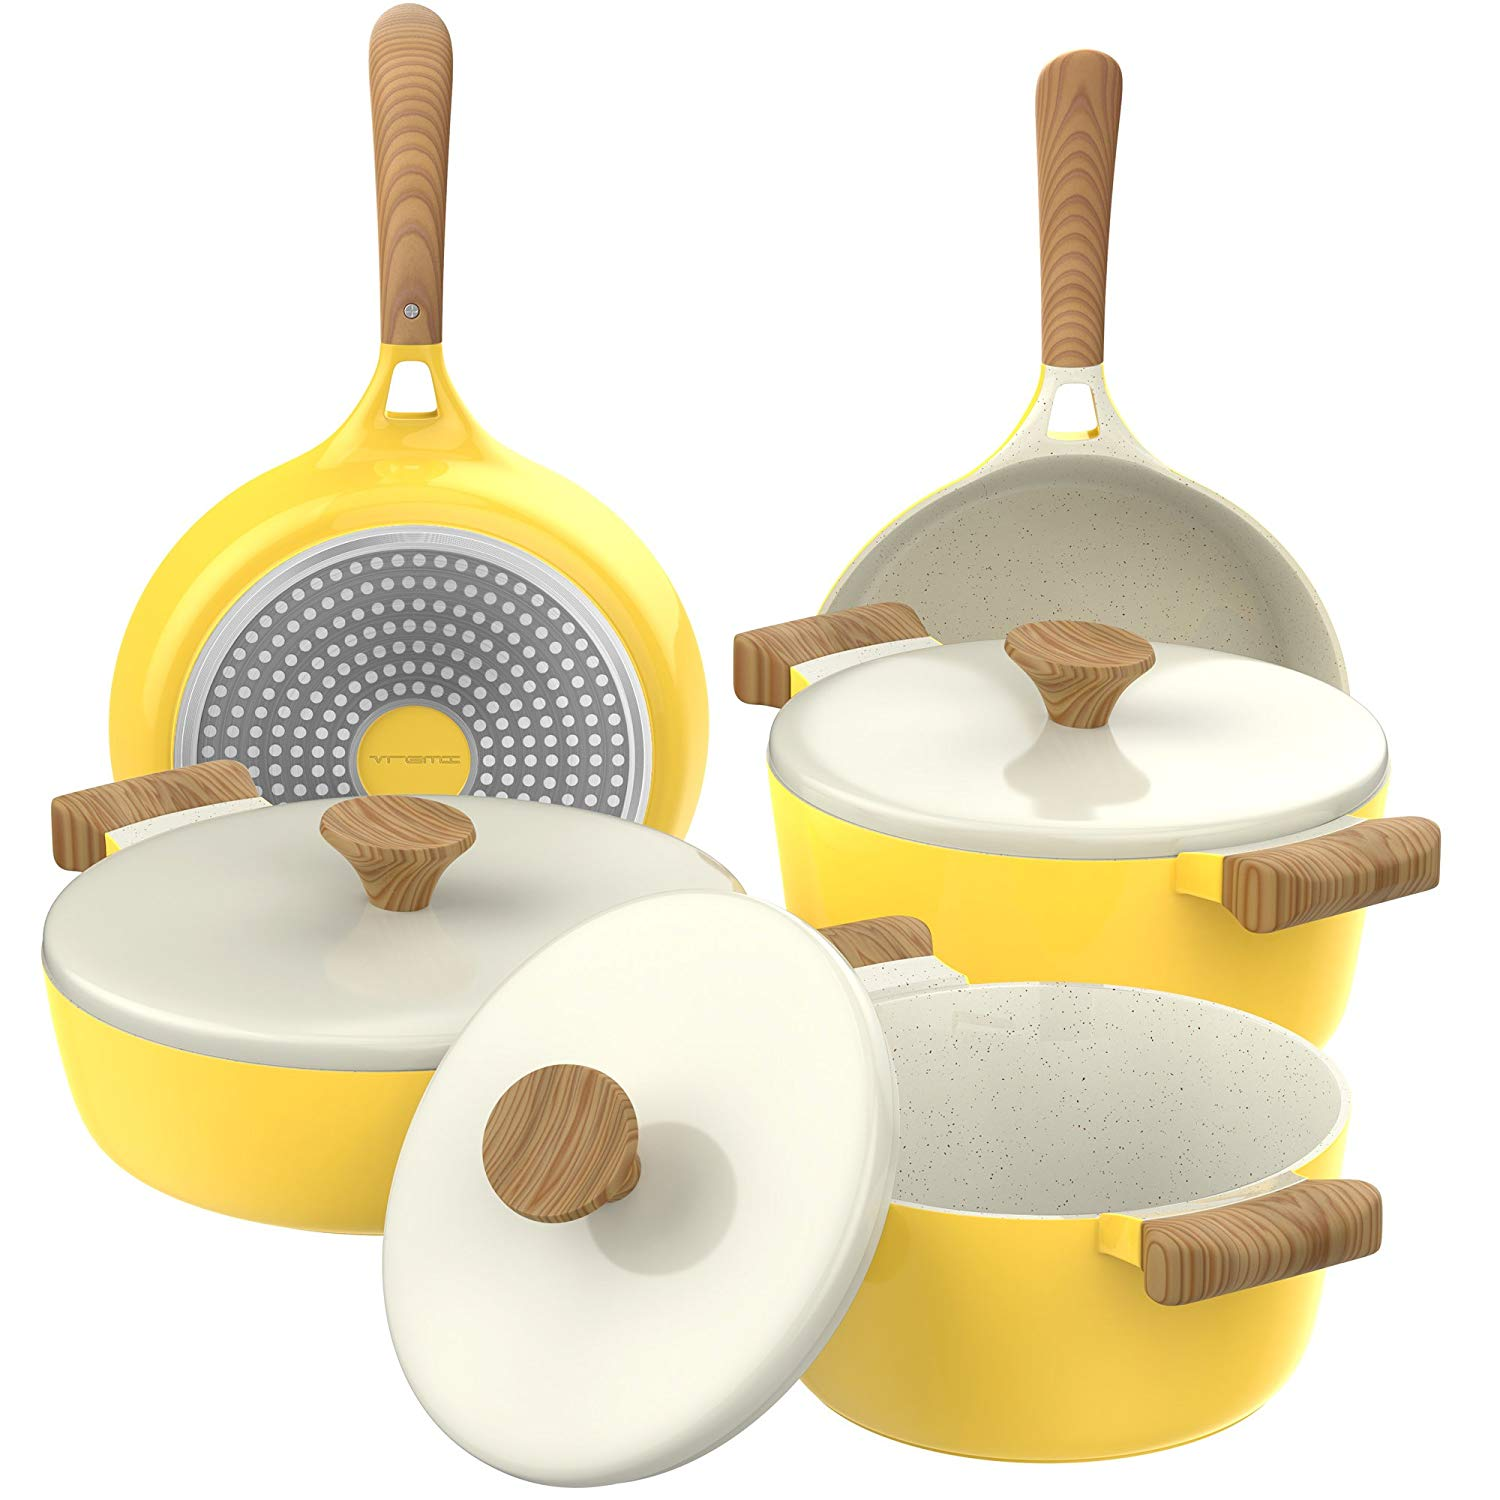 Vremi 8-Piece Ceramic Non-Stick Induction Cookware